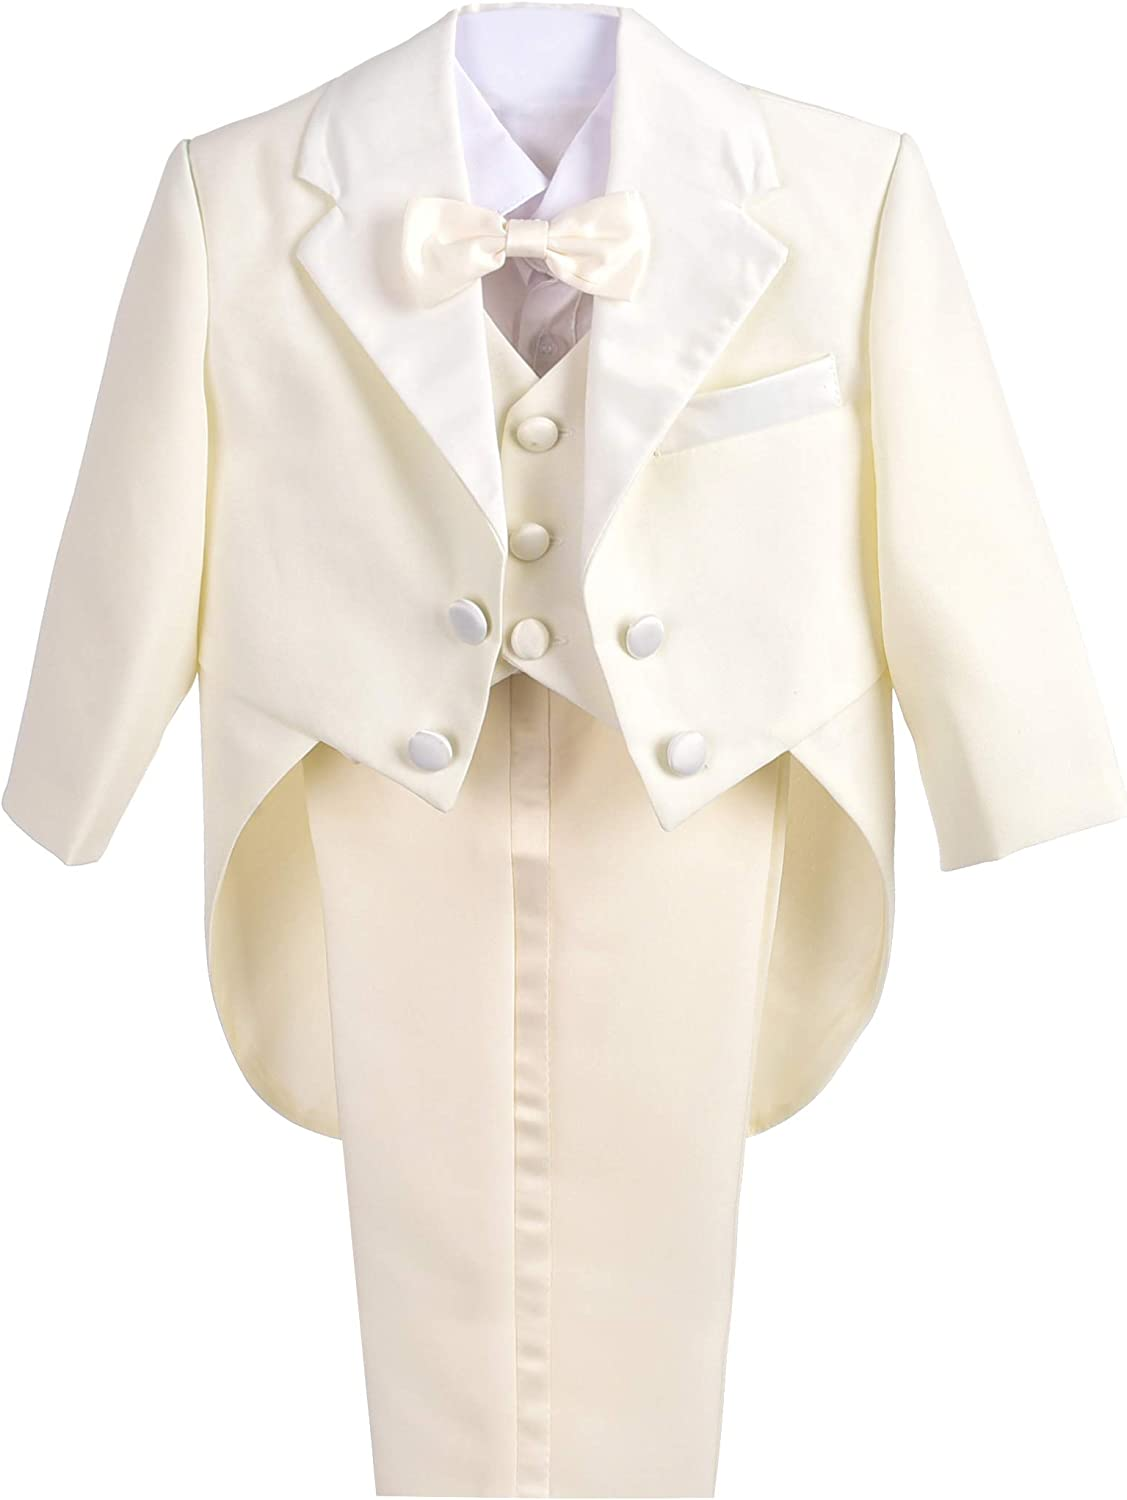 Lito Angels Baby Boys' Classic Tuxedo with Tail Wedding Outfits Suit 5 Piece Set 039